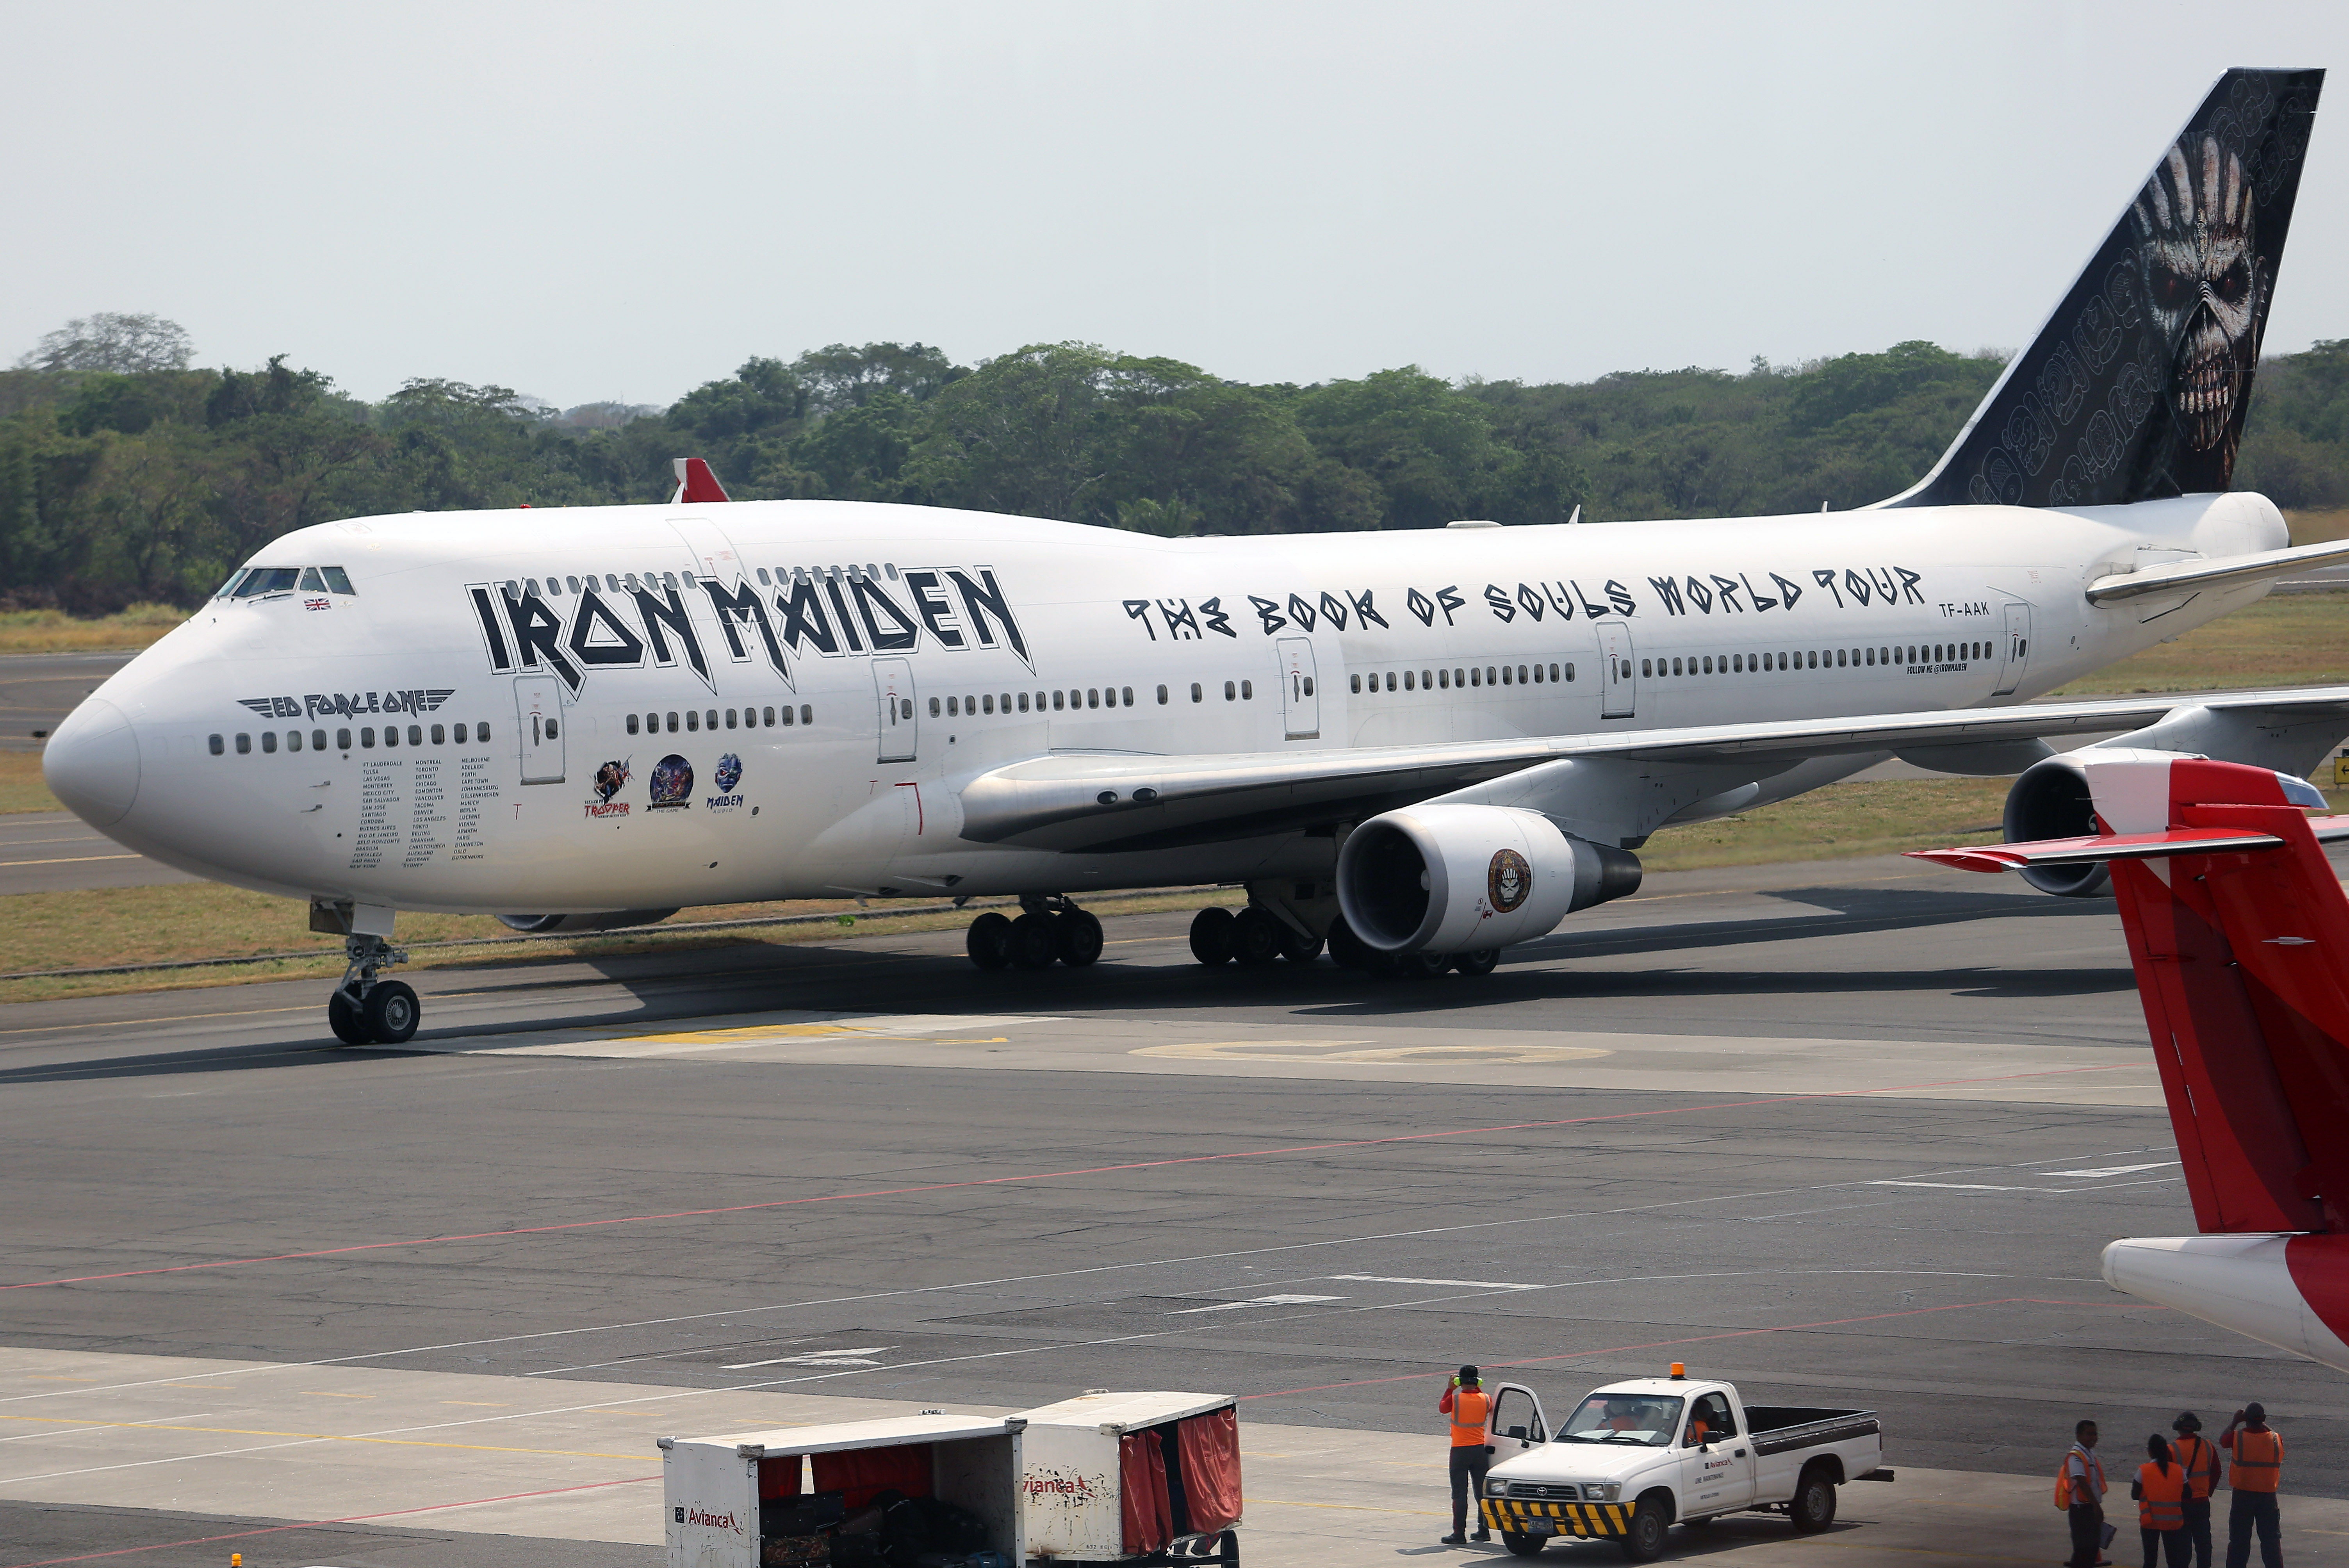 Iron Maiden's 'Ed Force One' Plane 'Badly Damaged' in Airport